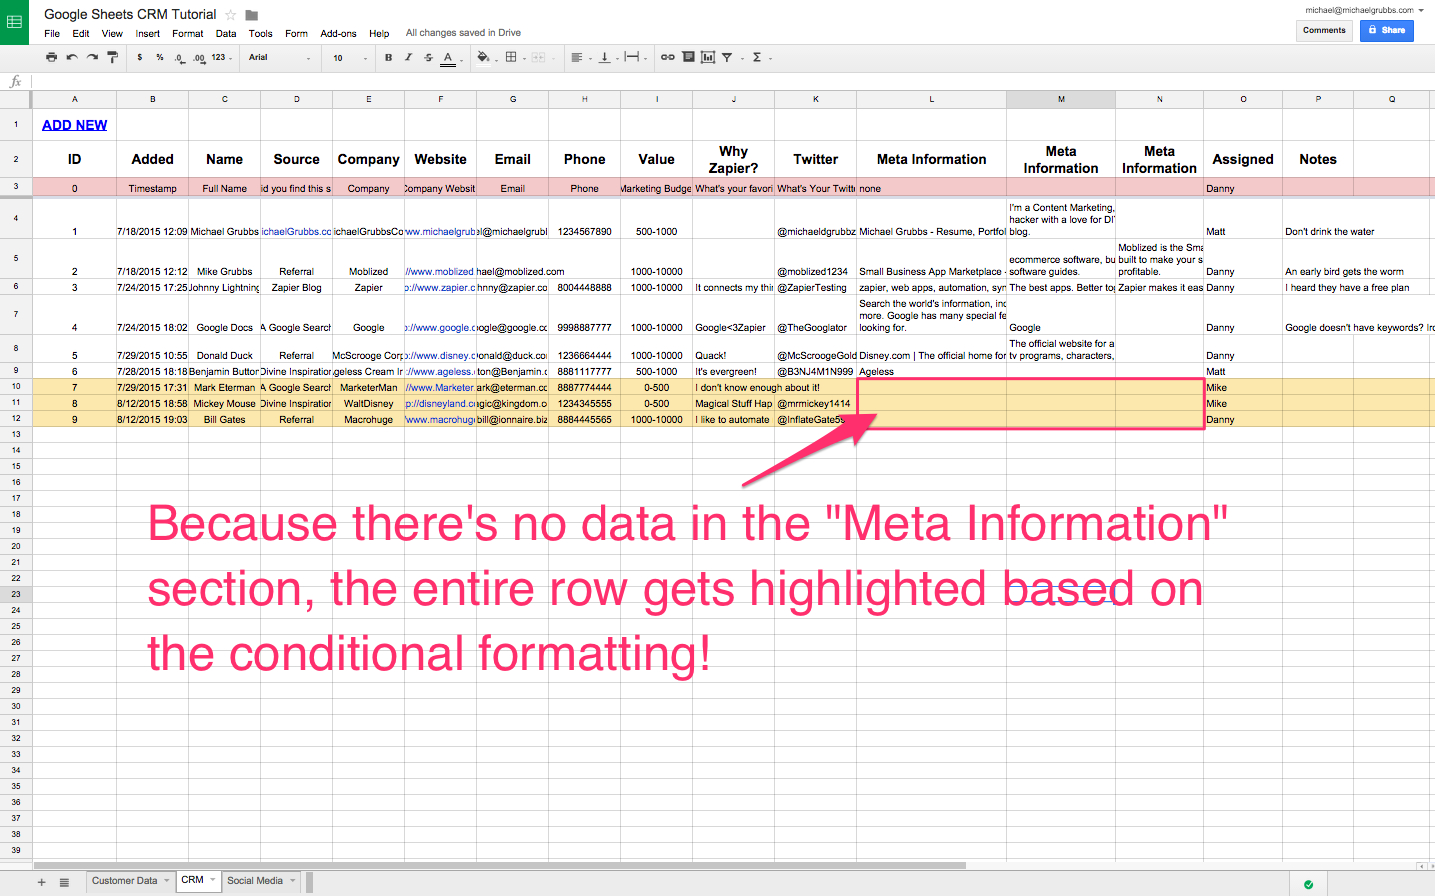 Spreadsheet Crm: How To Create A Customizable Crm With Google Sheets Throughout Crm Excel Spreadsheet Template Free